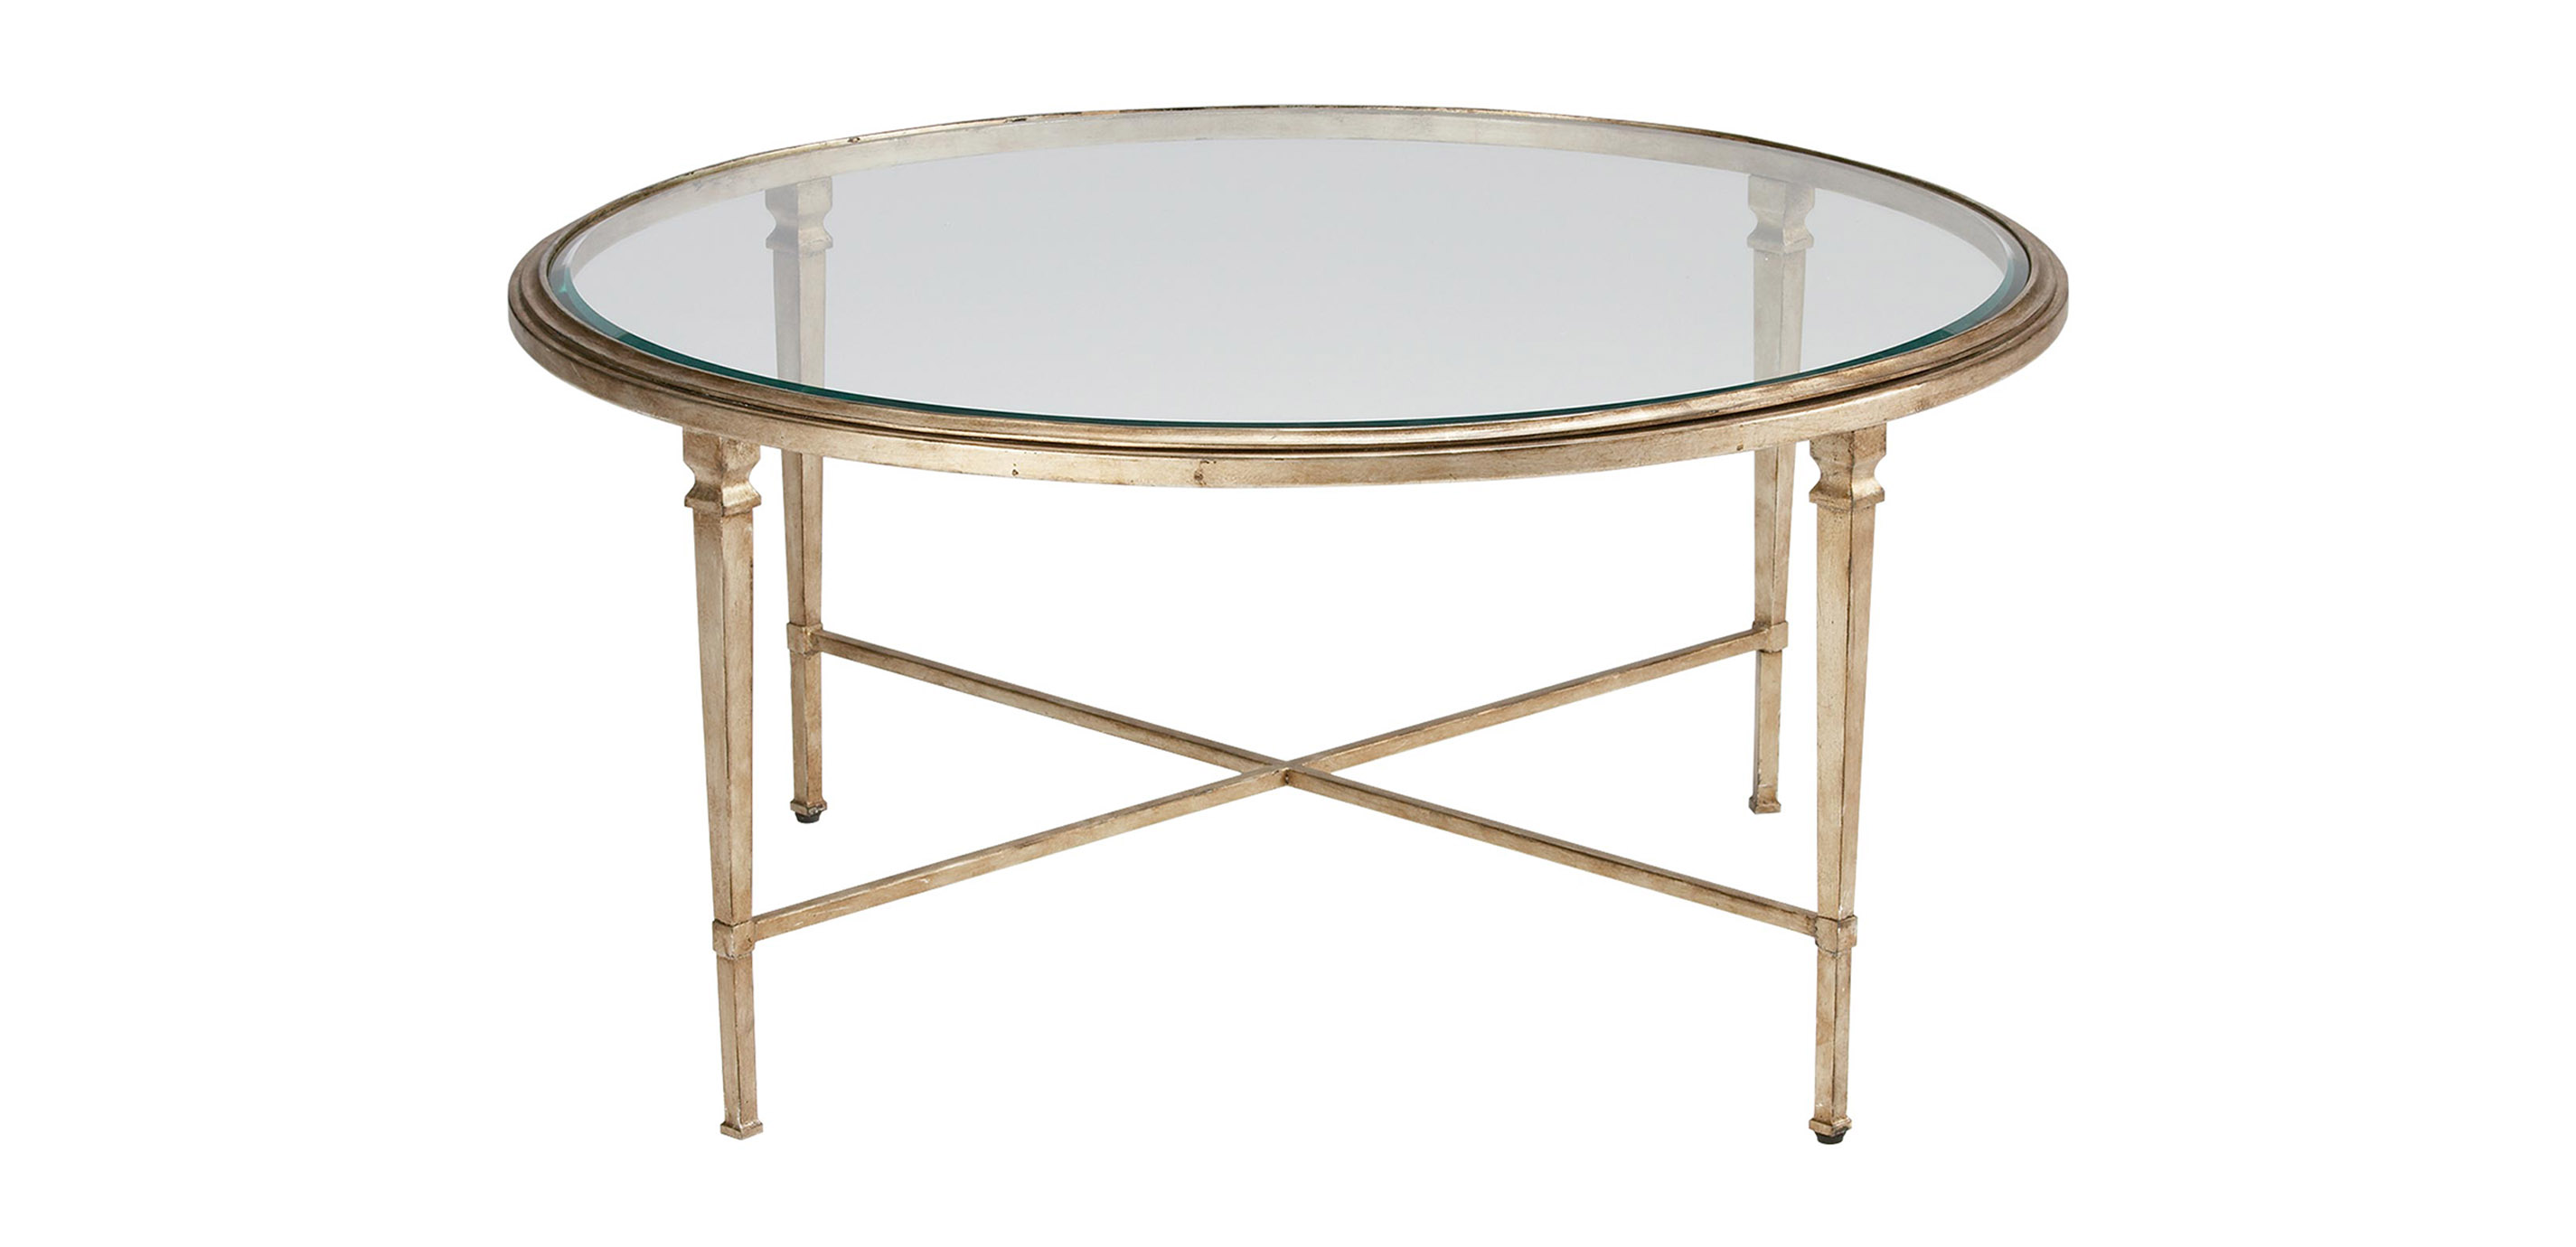 Heron round coffee table ethan allen What to put on a round coffee table